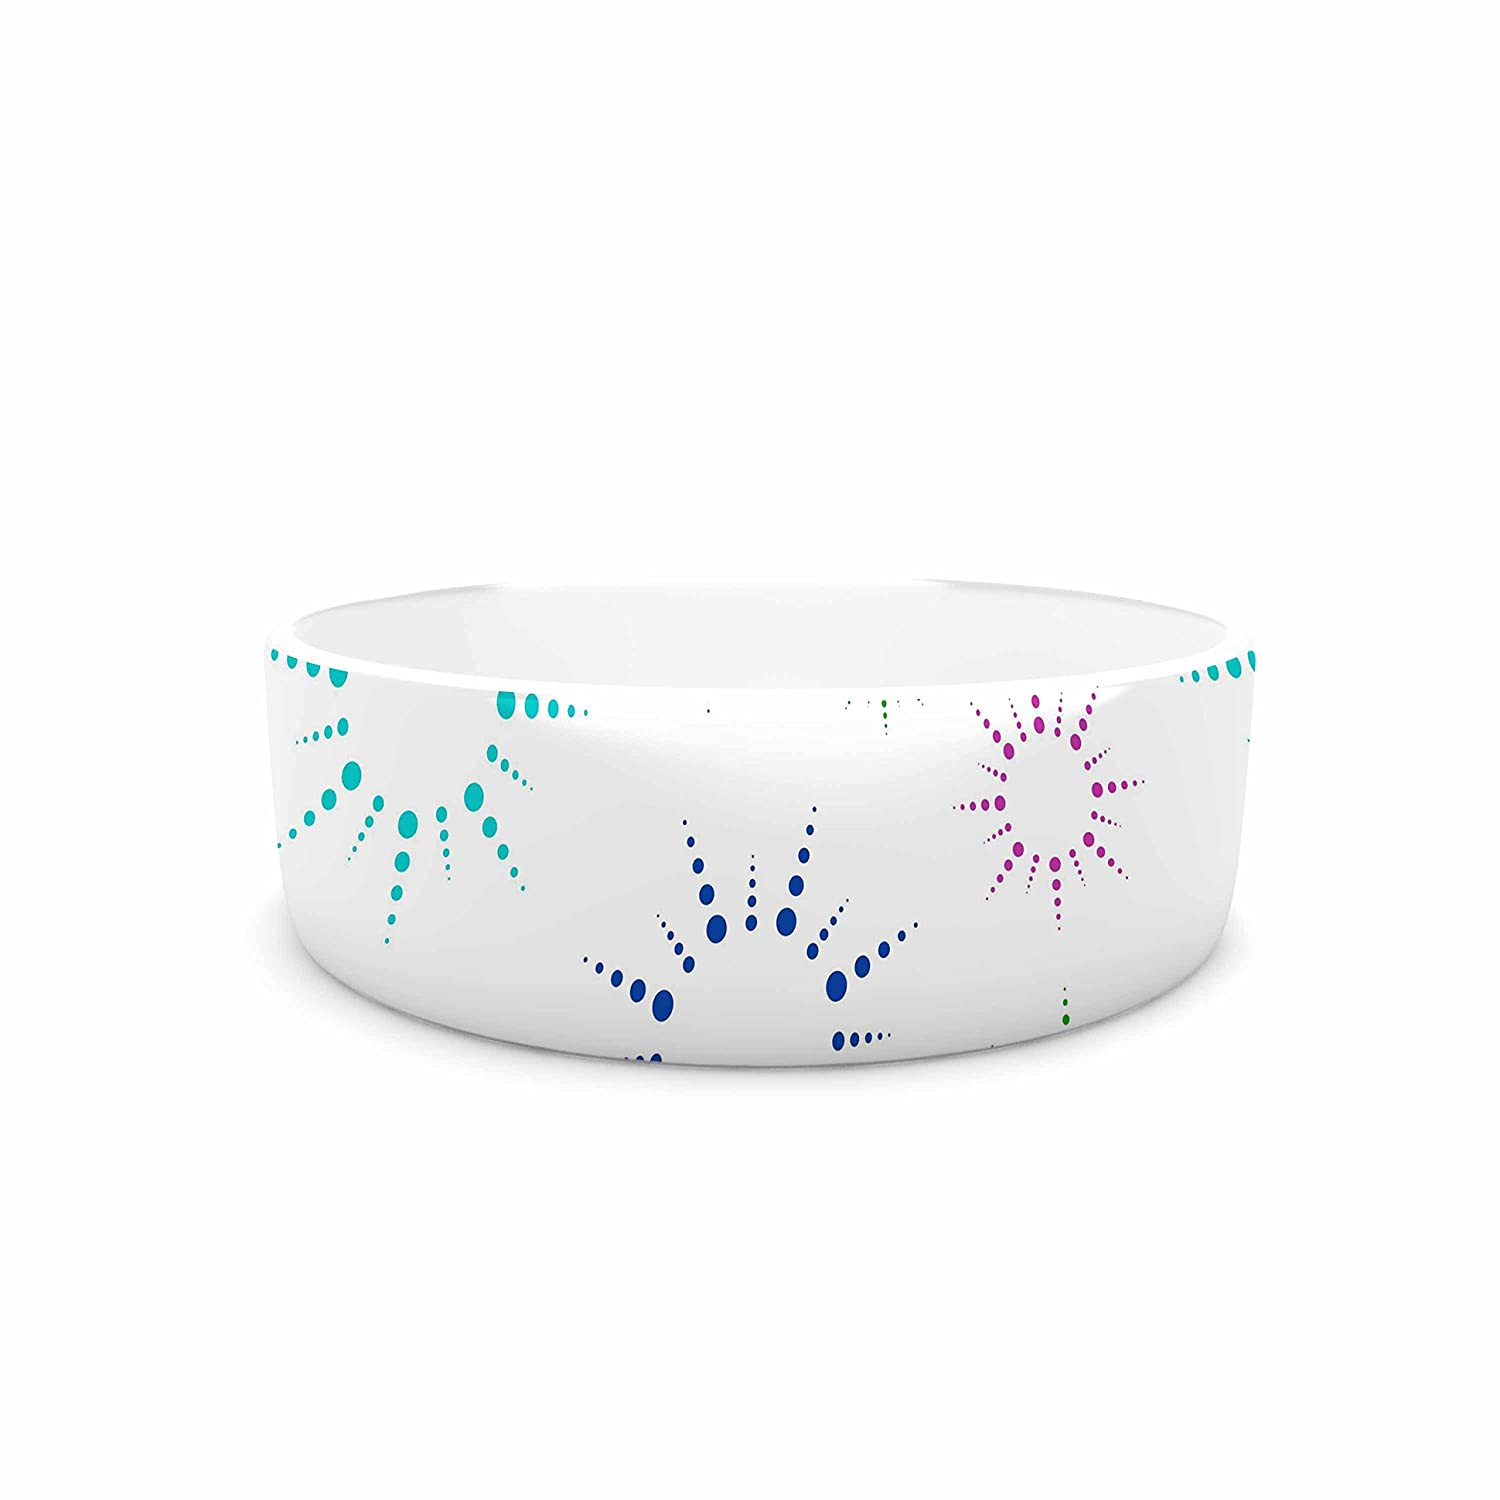 KESS InHouse NL Designs Rainbow Fireworks  Multicolor Pattern Pet Bowl, 7